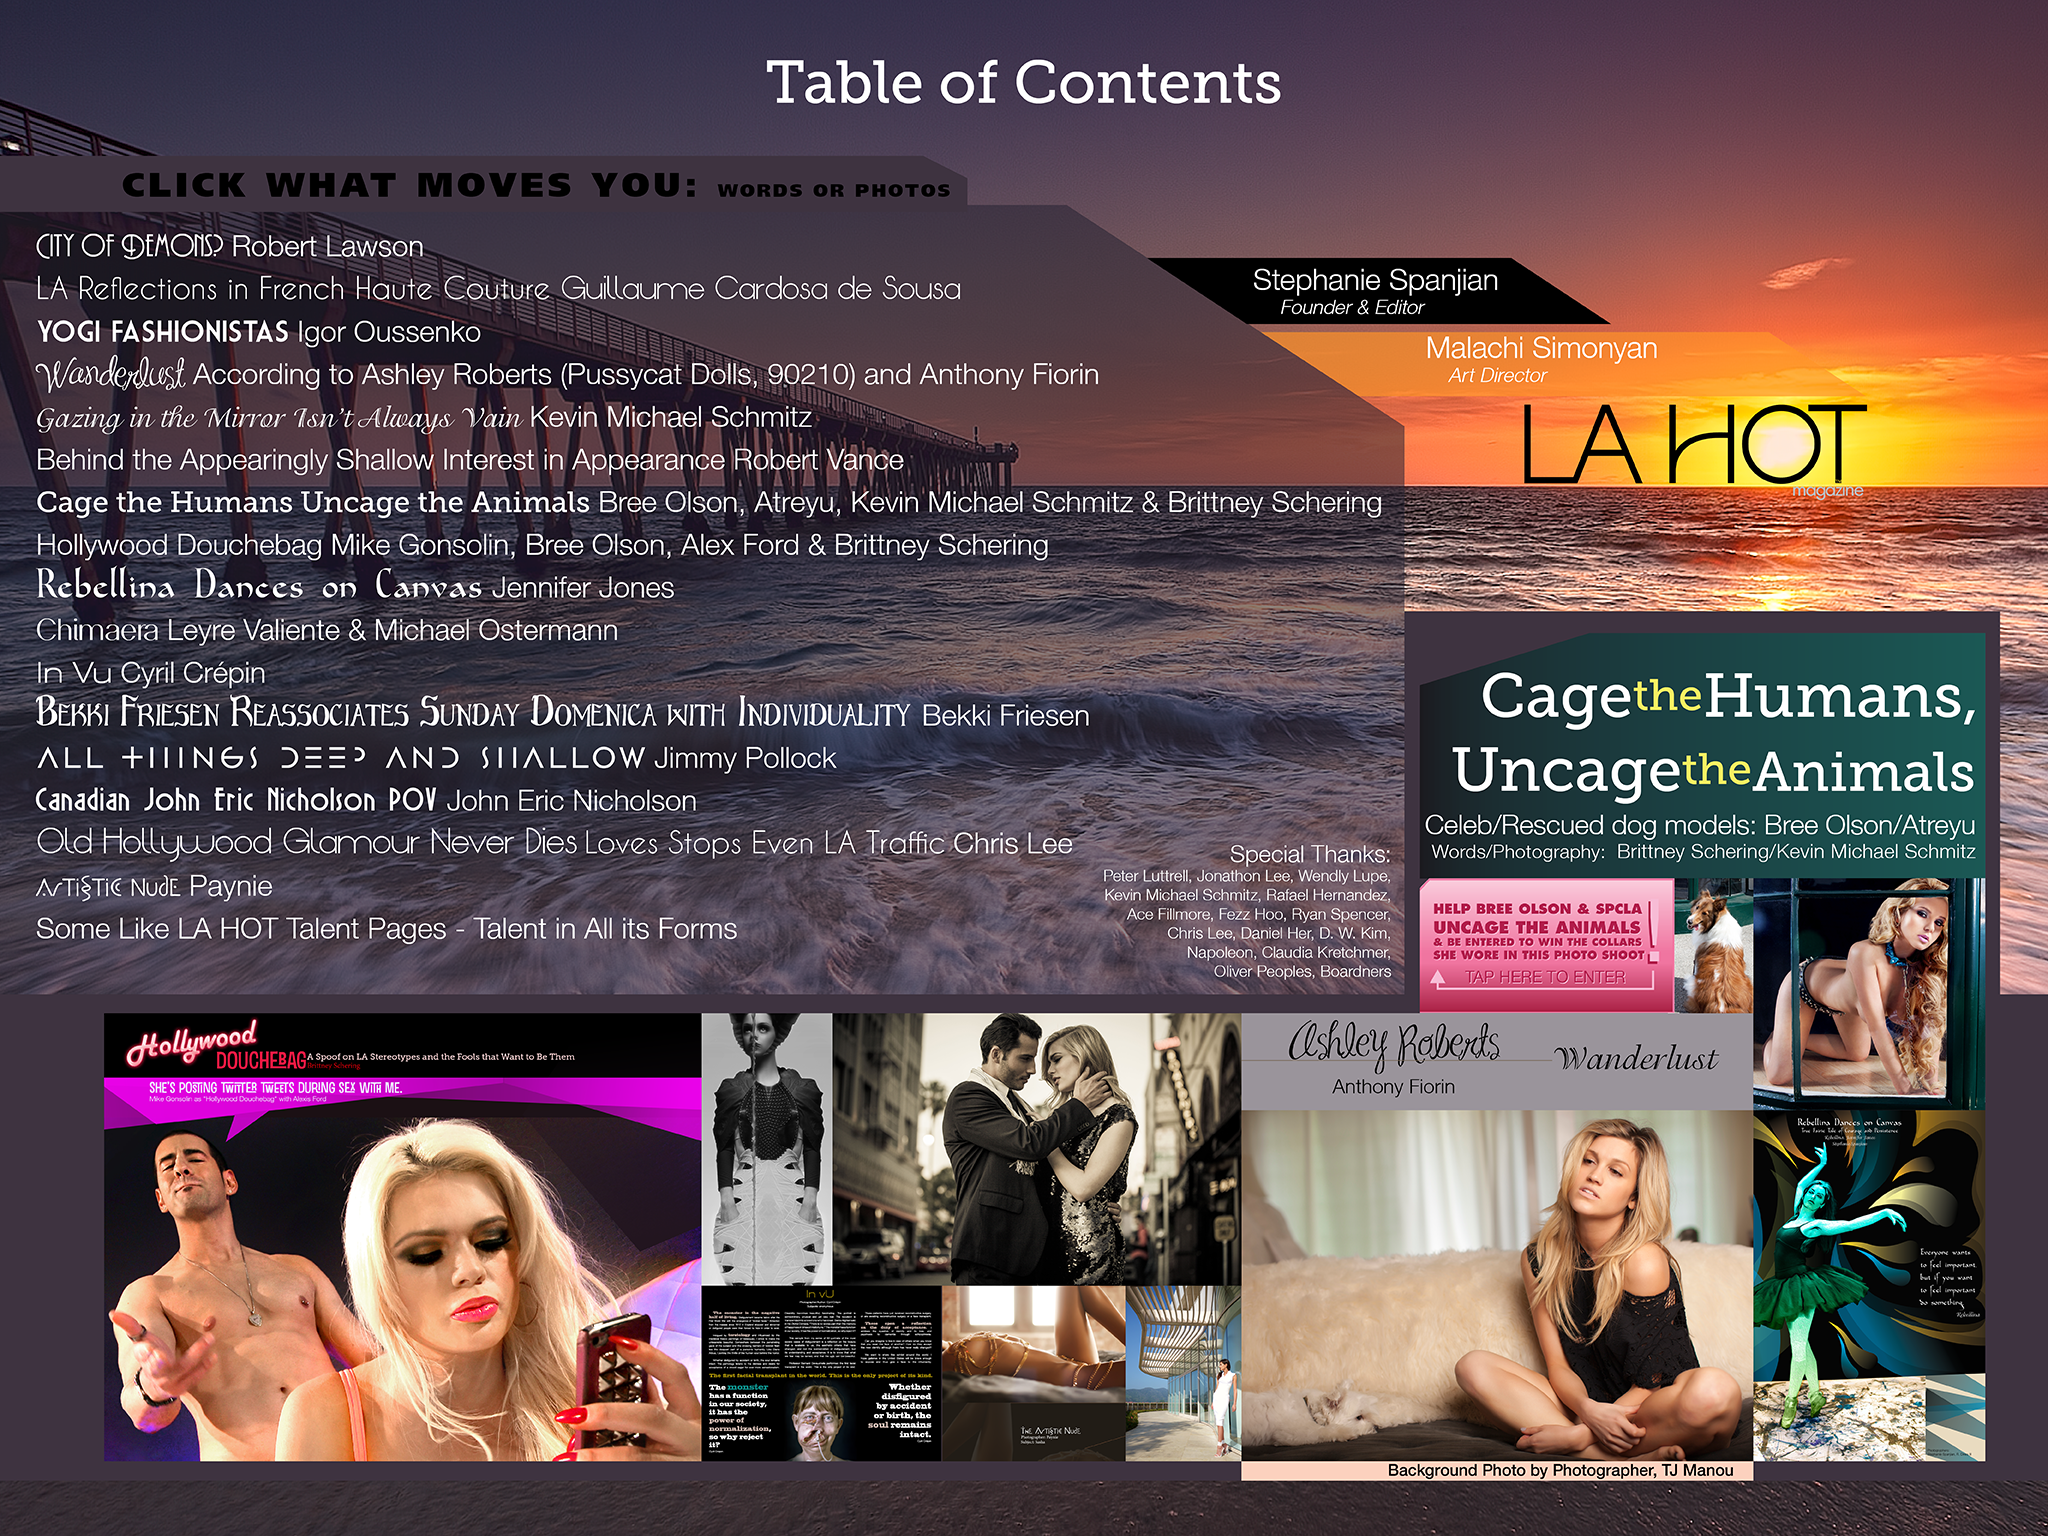 Table of Contents of LA HOT Magazine